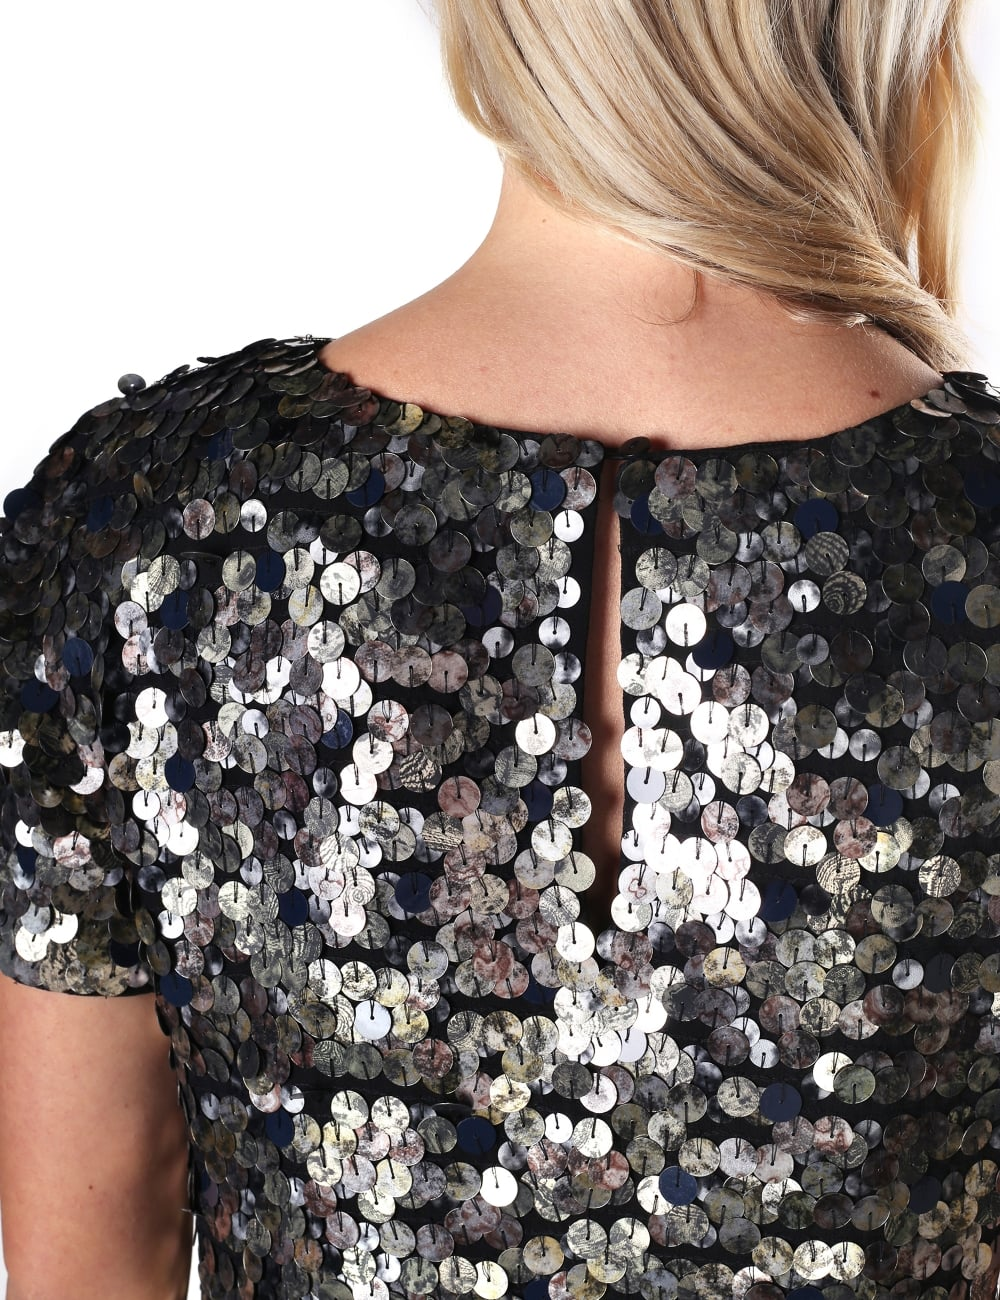 14e93703003 ... French Connection Women's Moon Rock Sparkle Short Sleeve Round Neck  Dress. Tap image to zoom. Women's Moon Rock Sparkle Short Sleeve Round Neck  Dress